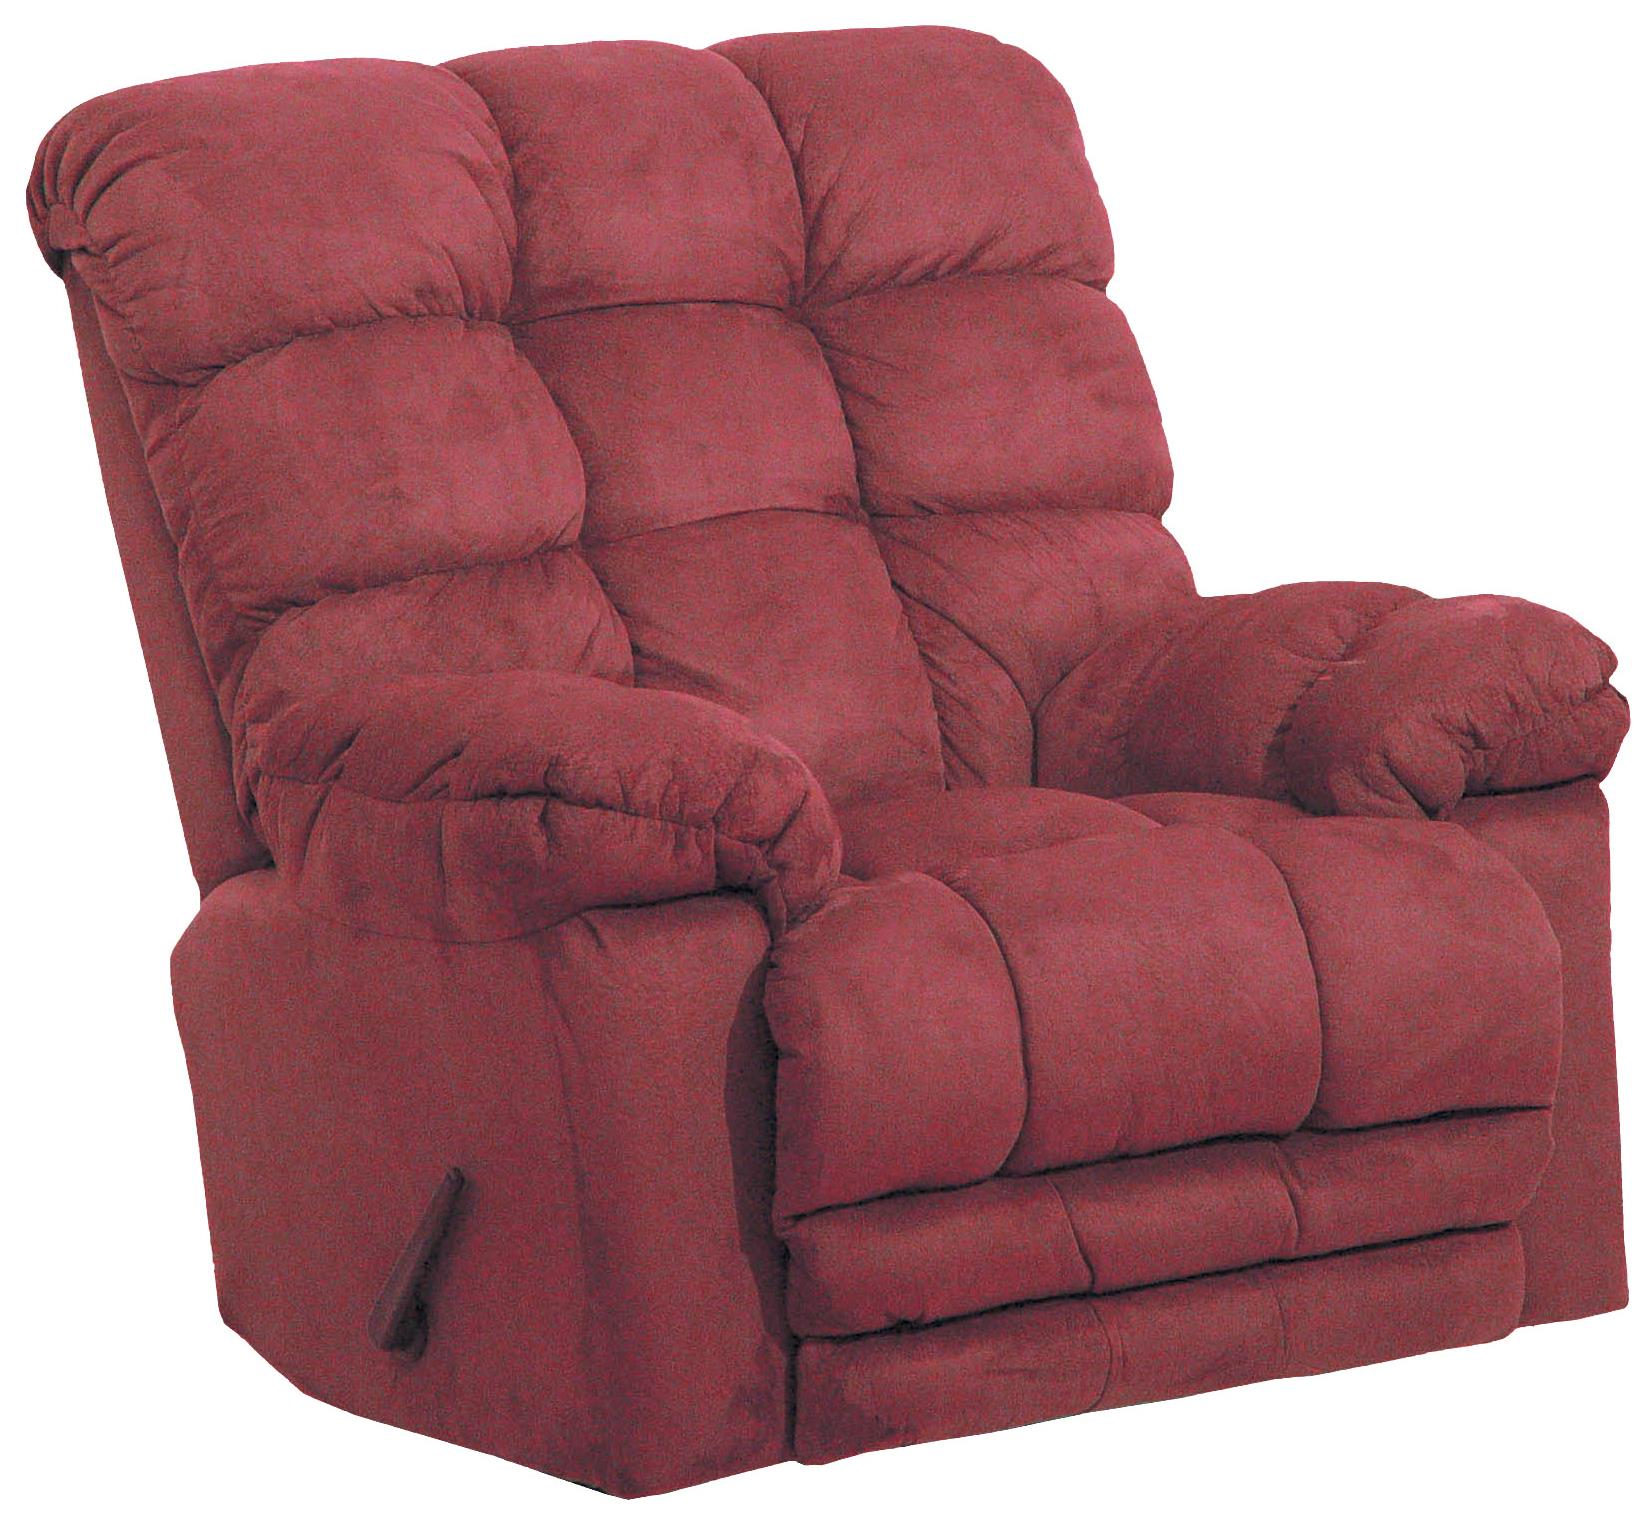 Catnapper motion chairs and recliners 54689 2 magnum for Catnapper cuddler chaise rocker recliner